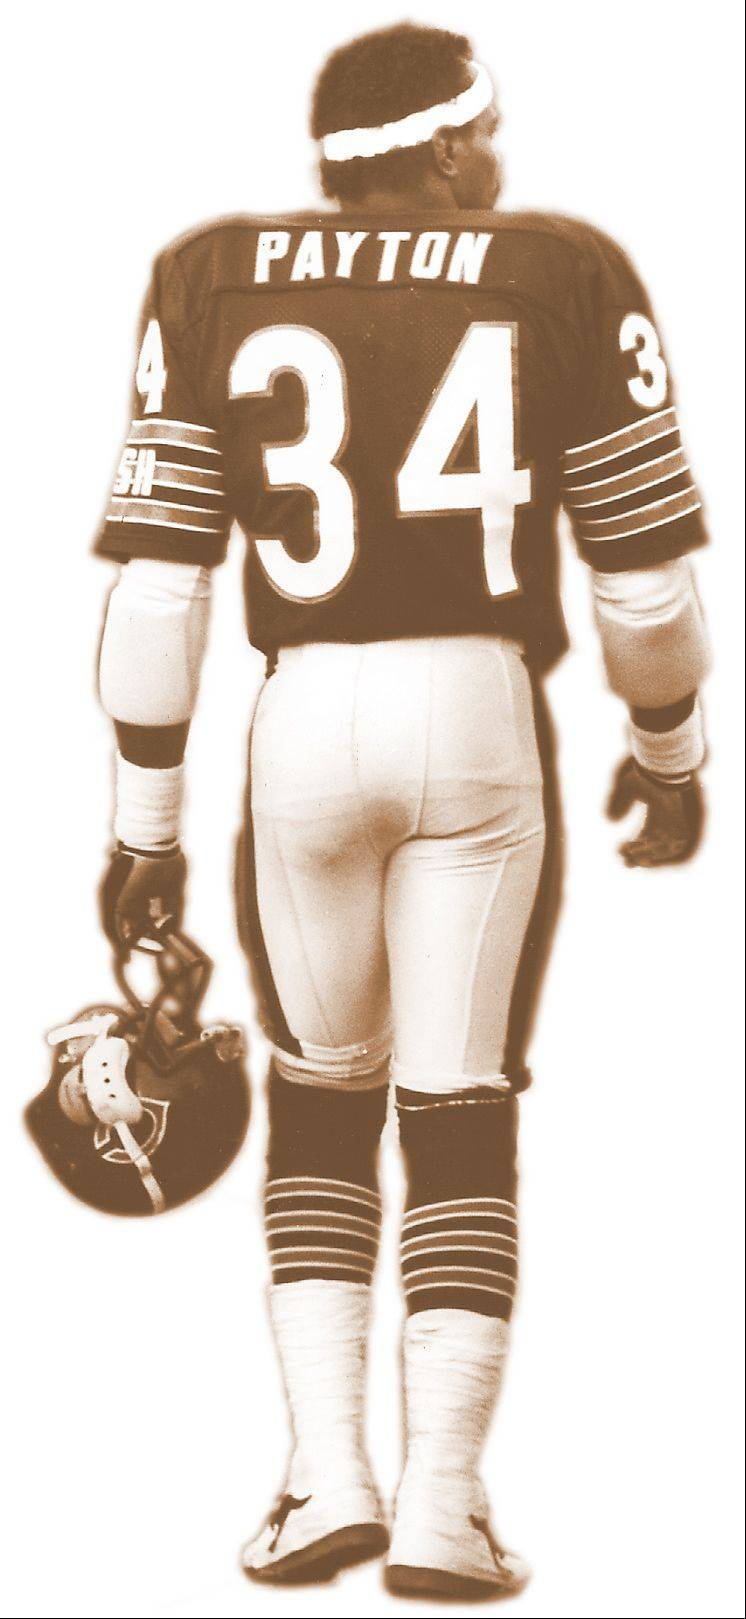 Mike Spellman insists the new biography on Walter Payton won't change how he feels about his the Bears legend.